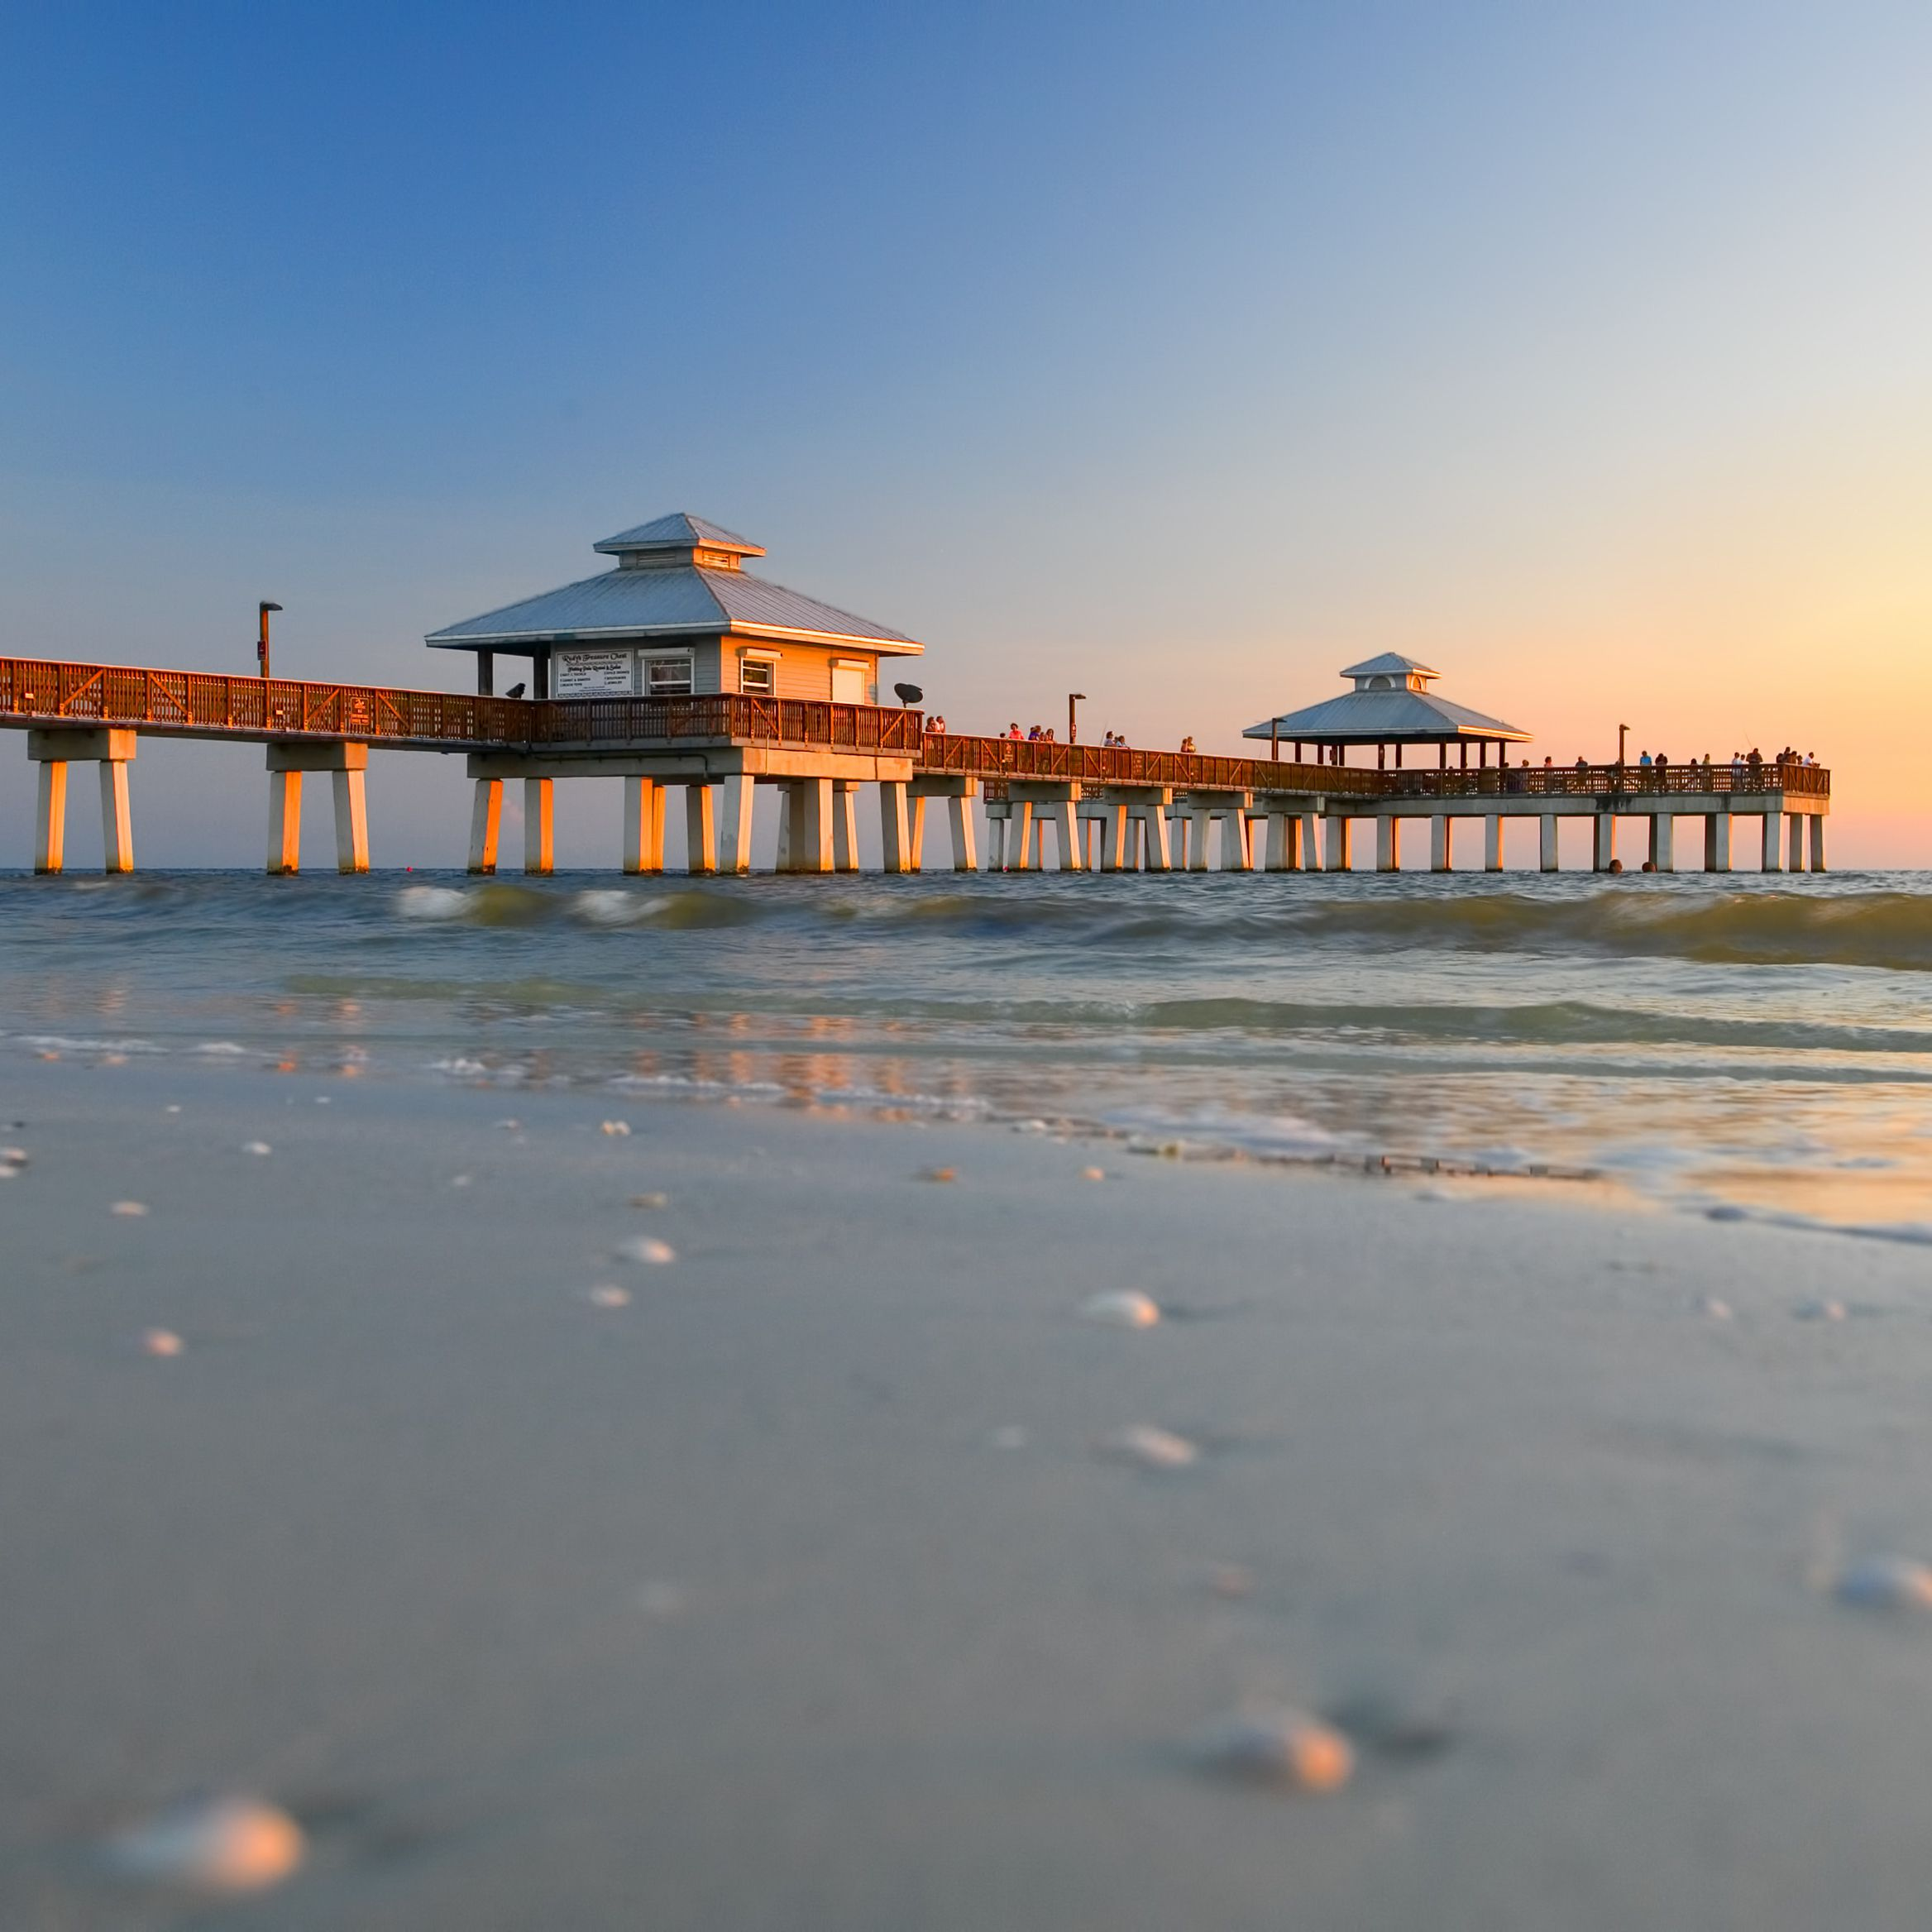 The Top 12 Attractions in Fort Myers, Florida